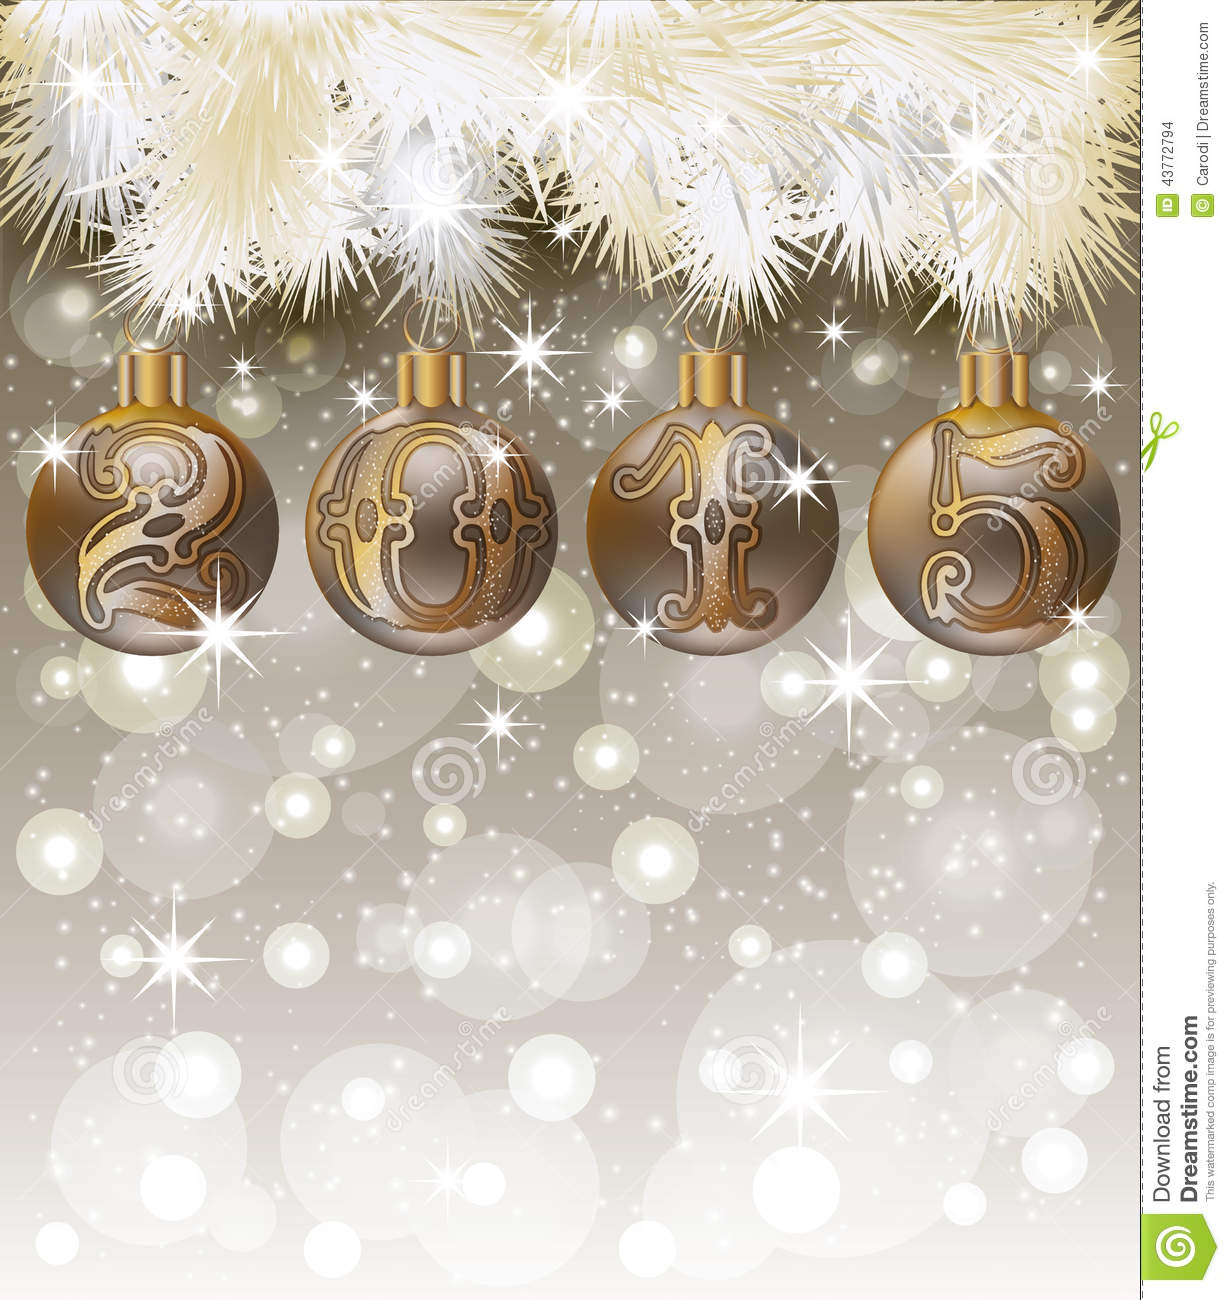 Happy New 2015 Year Card Vector Illustration. Www 2015year Com. View ...